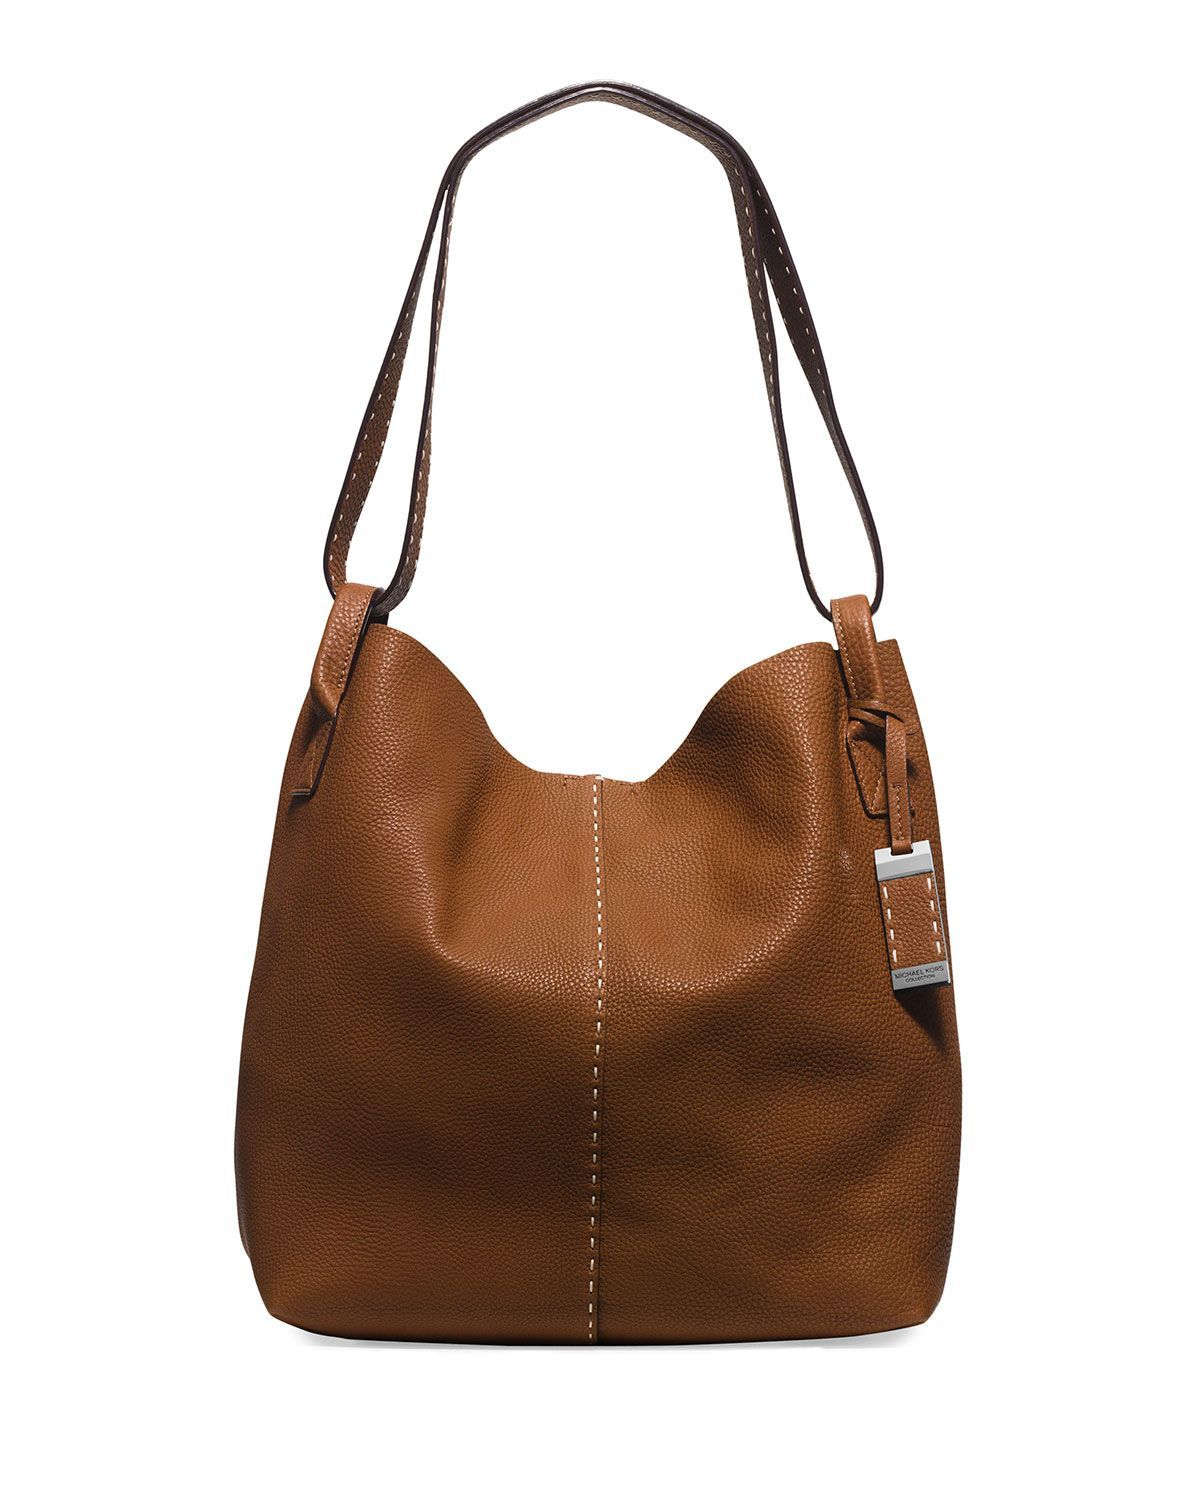 Rogers Large Slouchy Hobo Bag, Luggage, Women's - Michael Kors ...